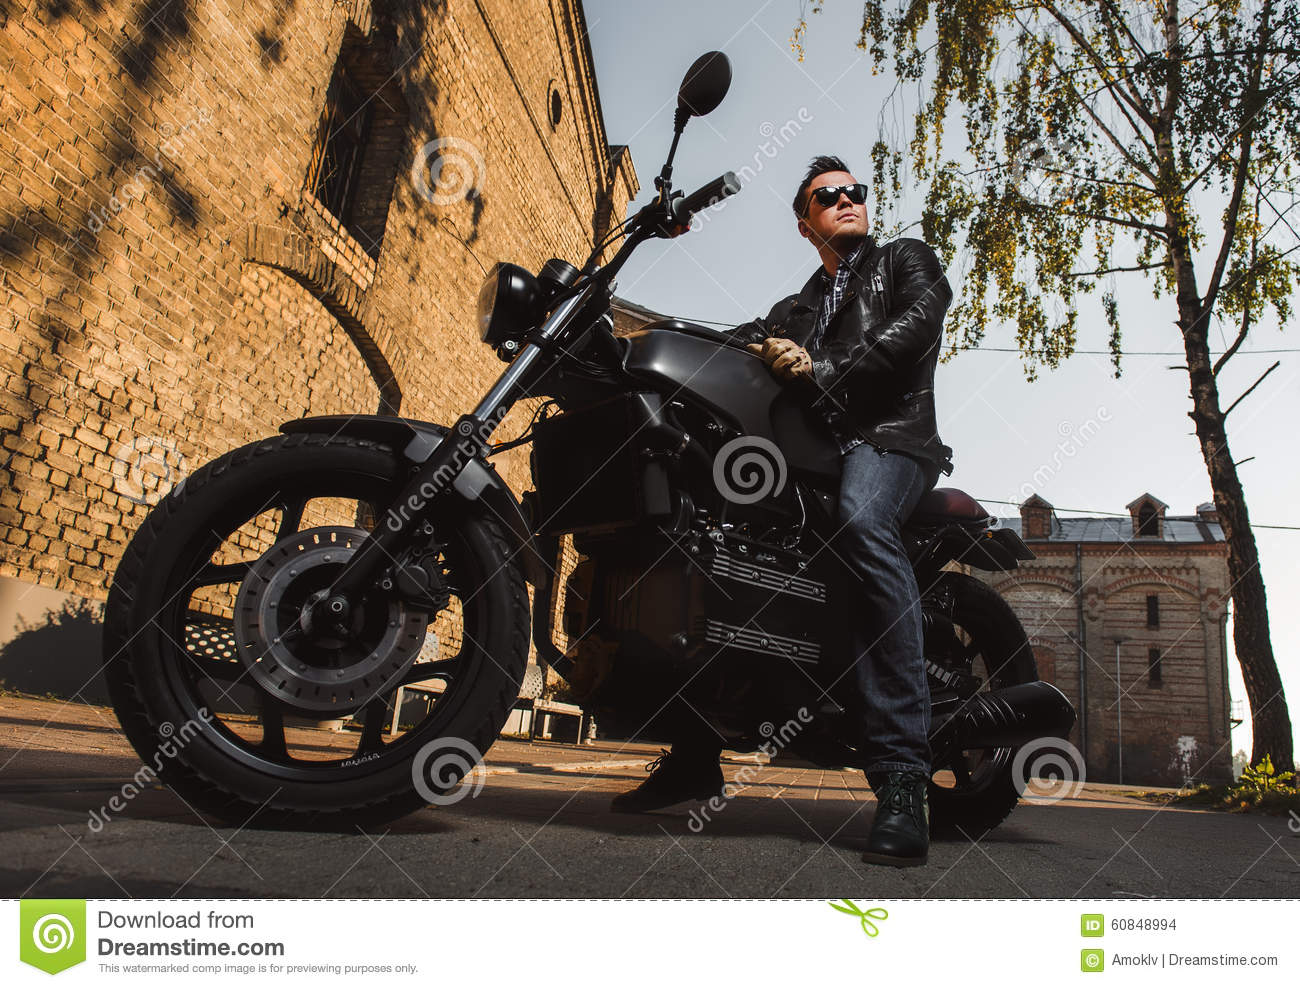 Man sitting on a cafe-racer motorcycle